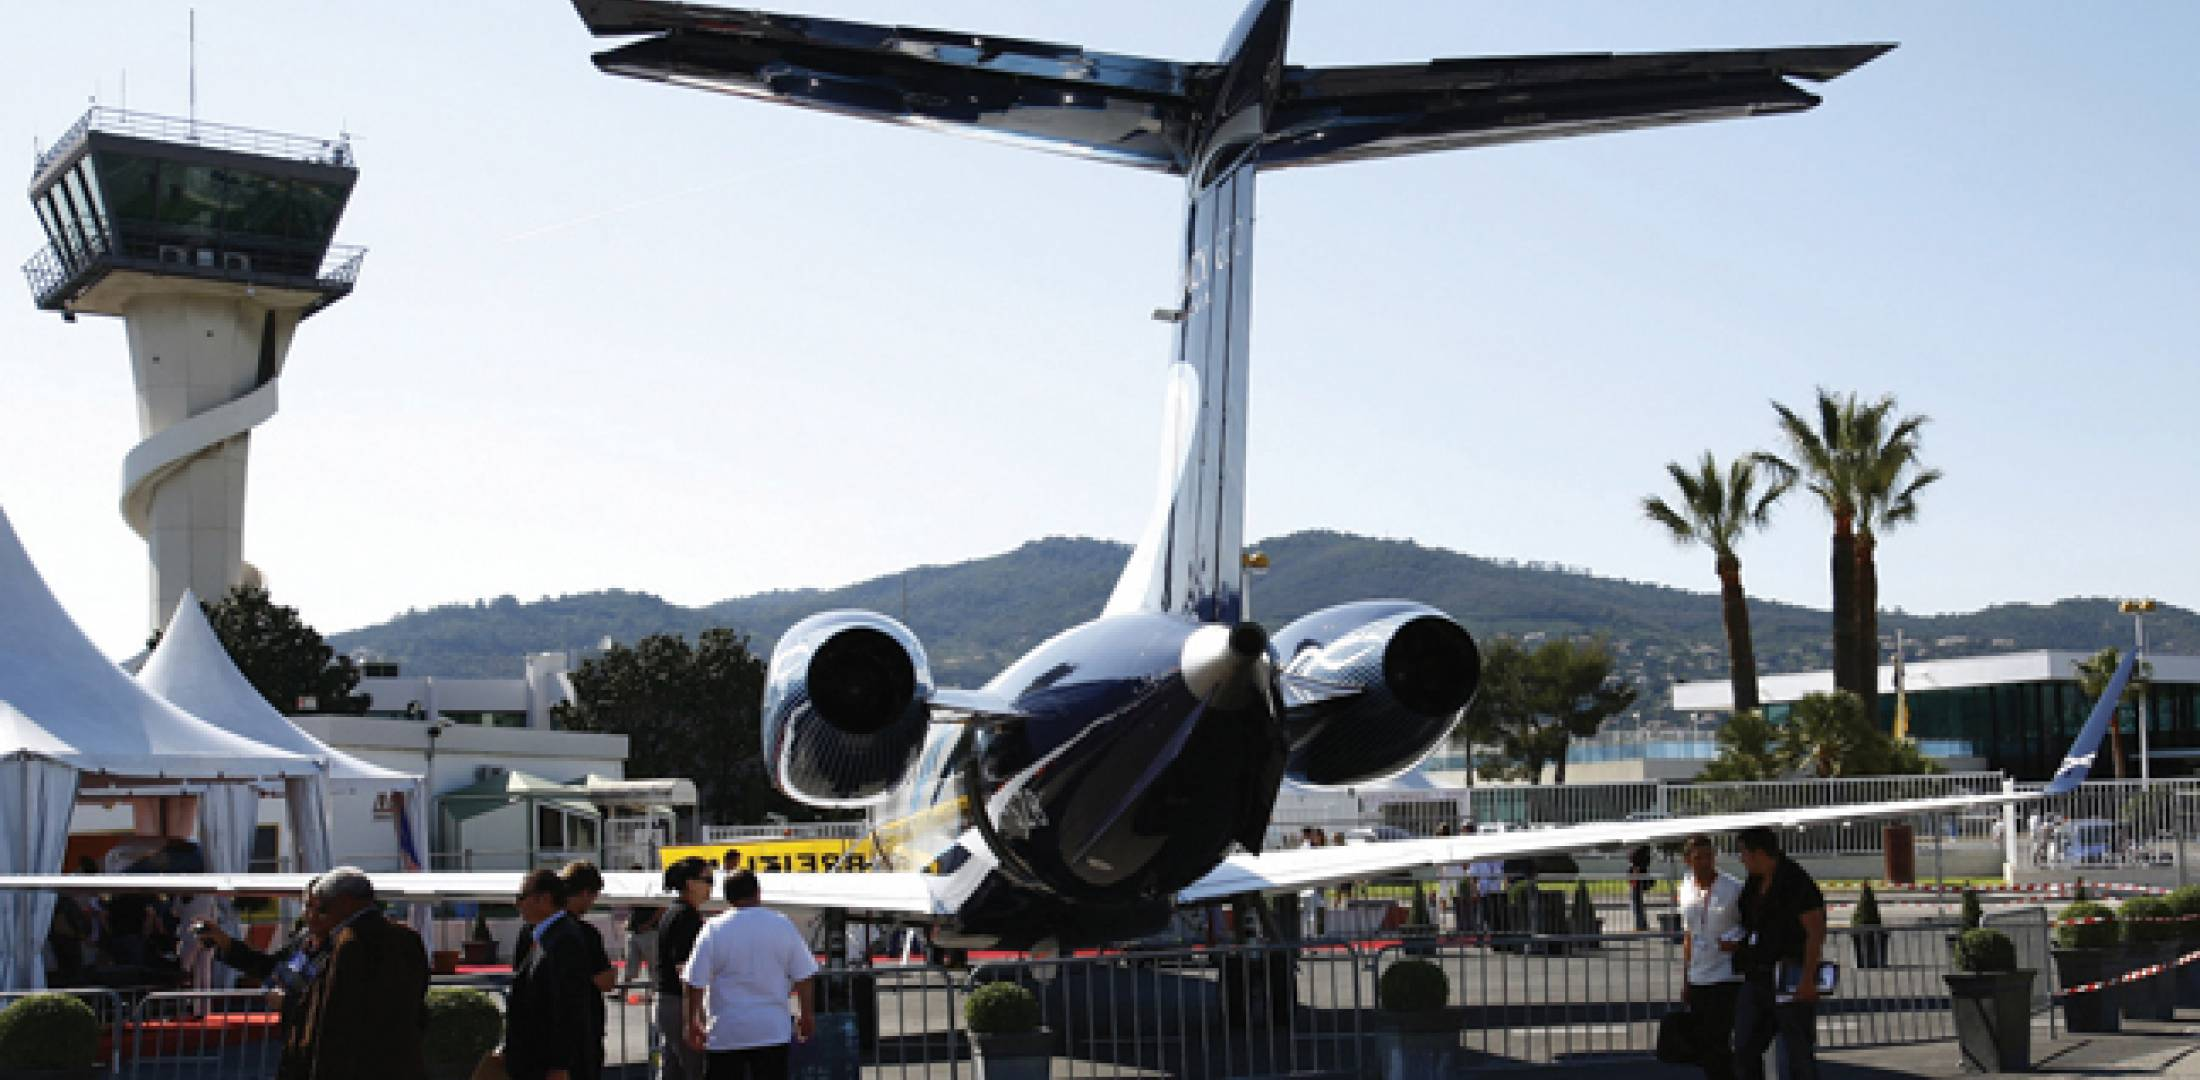 Cannes Airshow expects 20,000 visitors